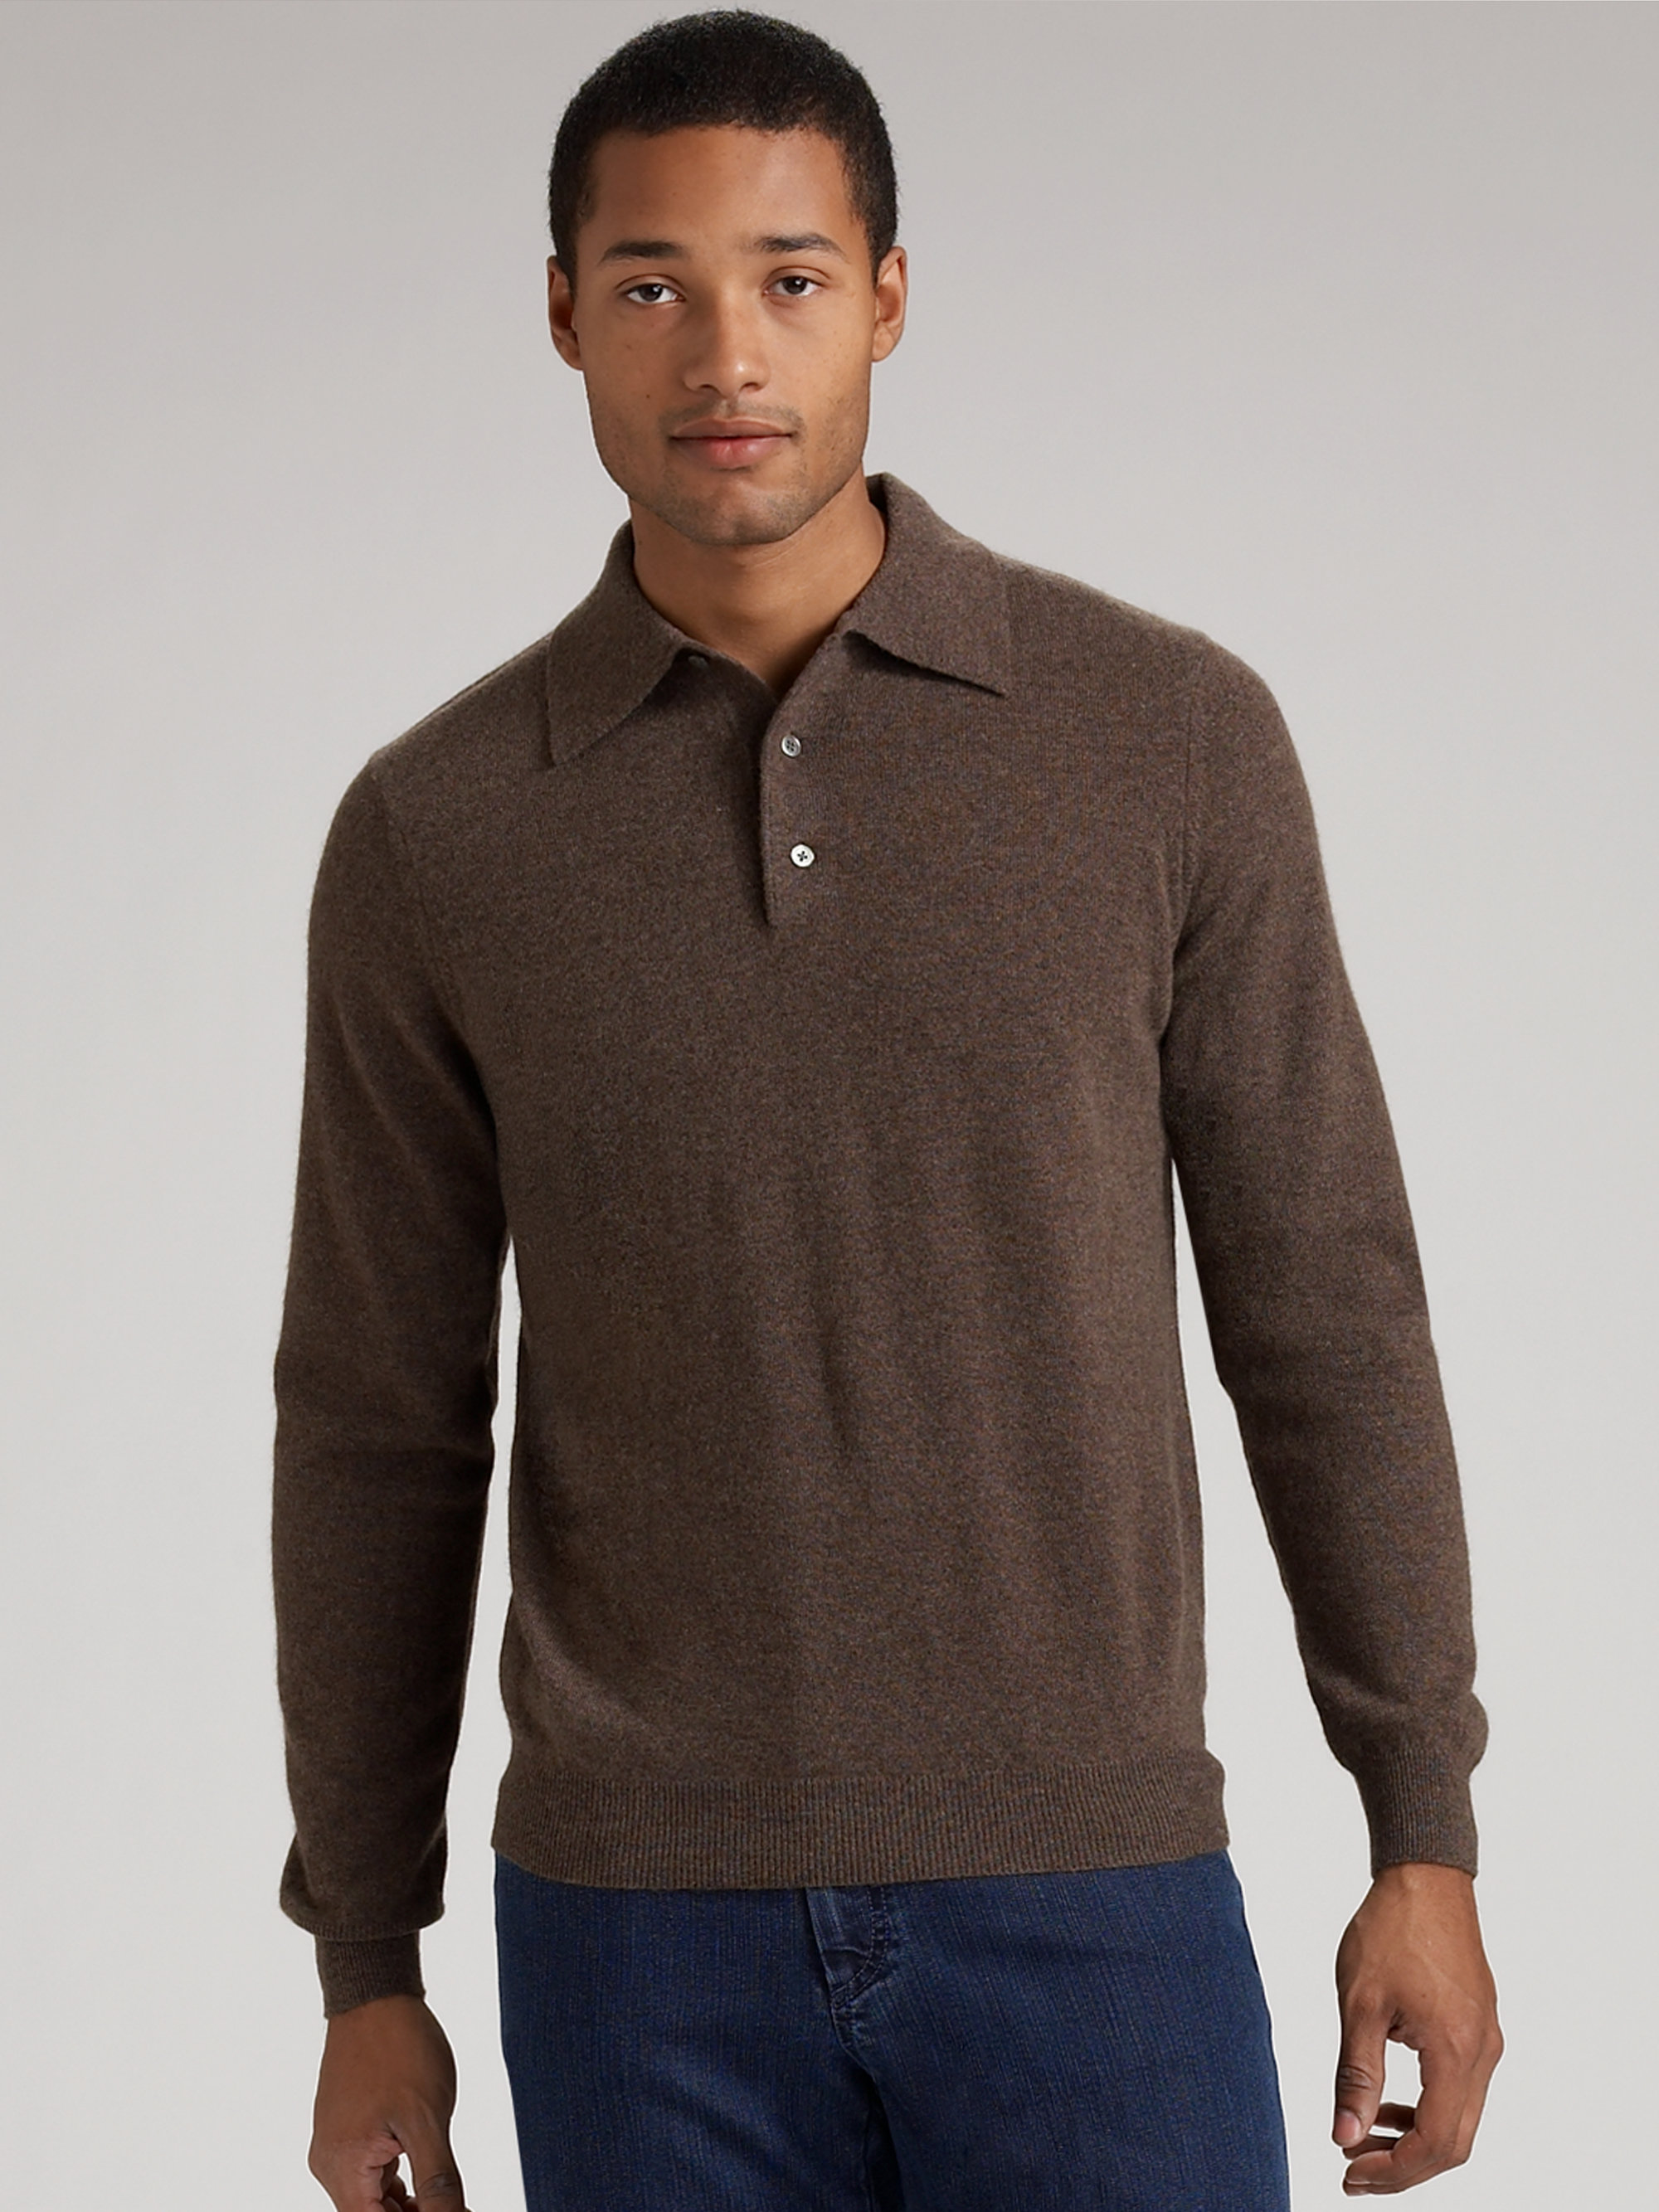 Saks fifth avenue Cashmere Polo Sweater in Brown for Men | Lyst